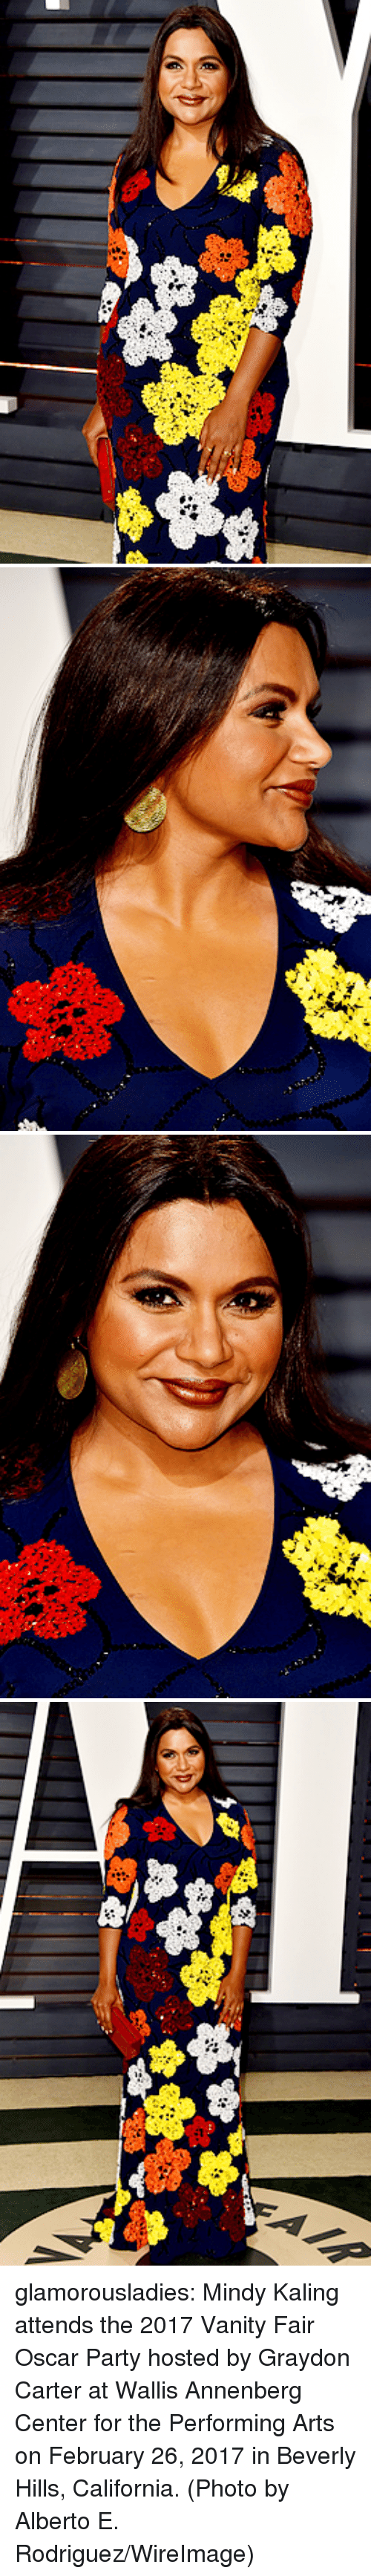 vanity fair: glamorousladies:   Mindy Kaling attends the 2017 Vanity Fair Oscar Party hosted by Graydon Carter at Wallis Annenberg Center for the Performing Arts on February 26, 2017 in Beverly Hills, California. (Photo by Alberto E. Rodriguez/WireImage)